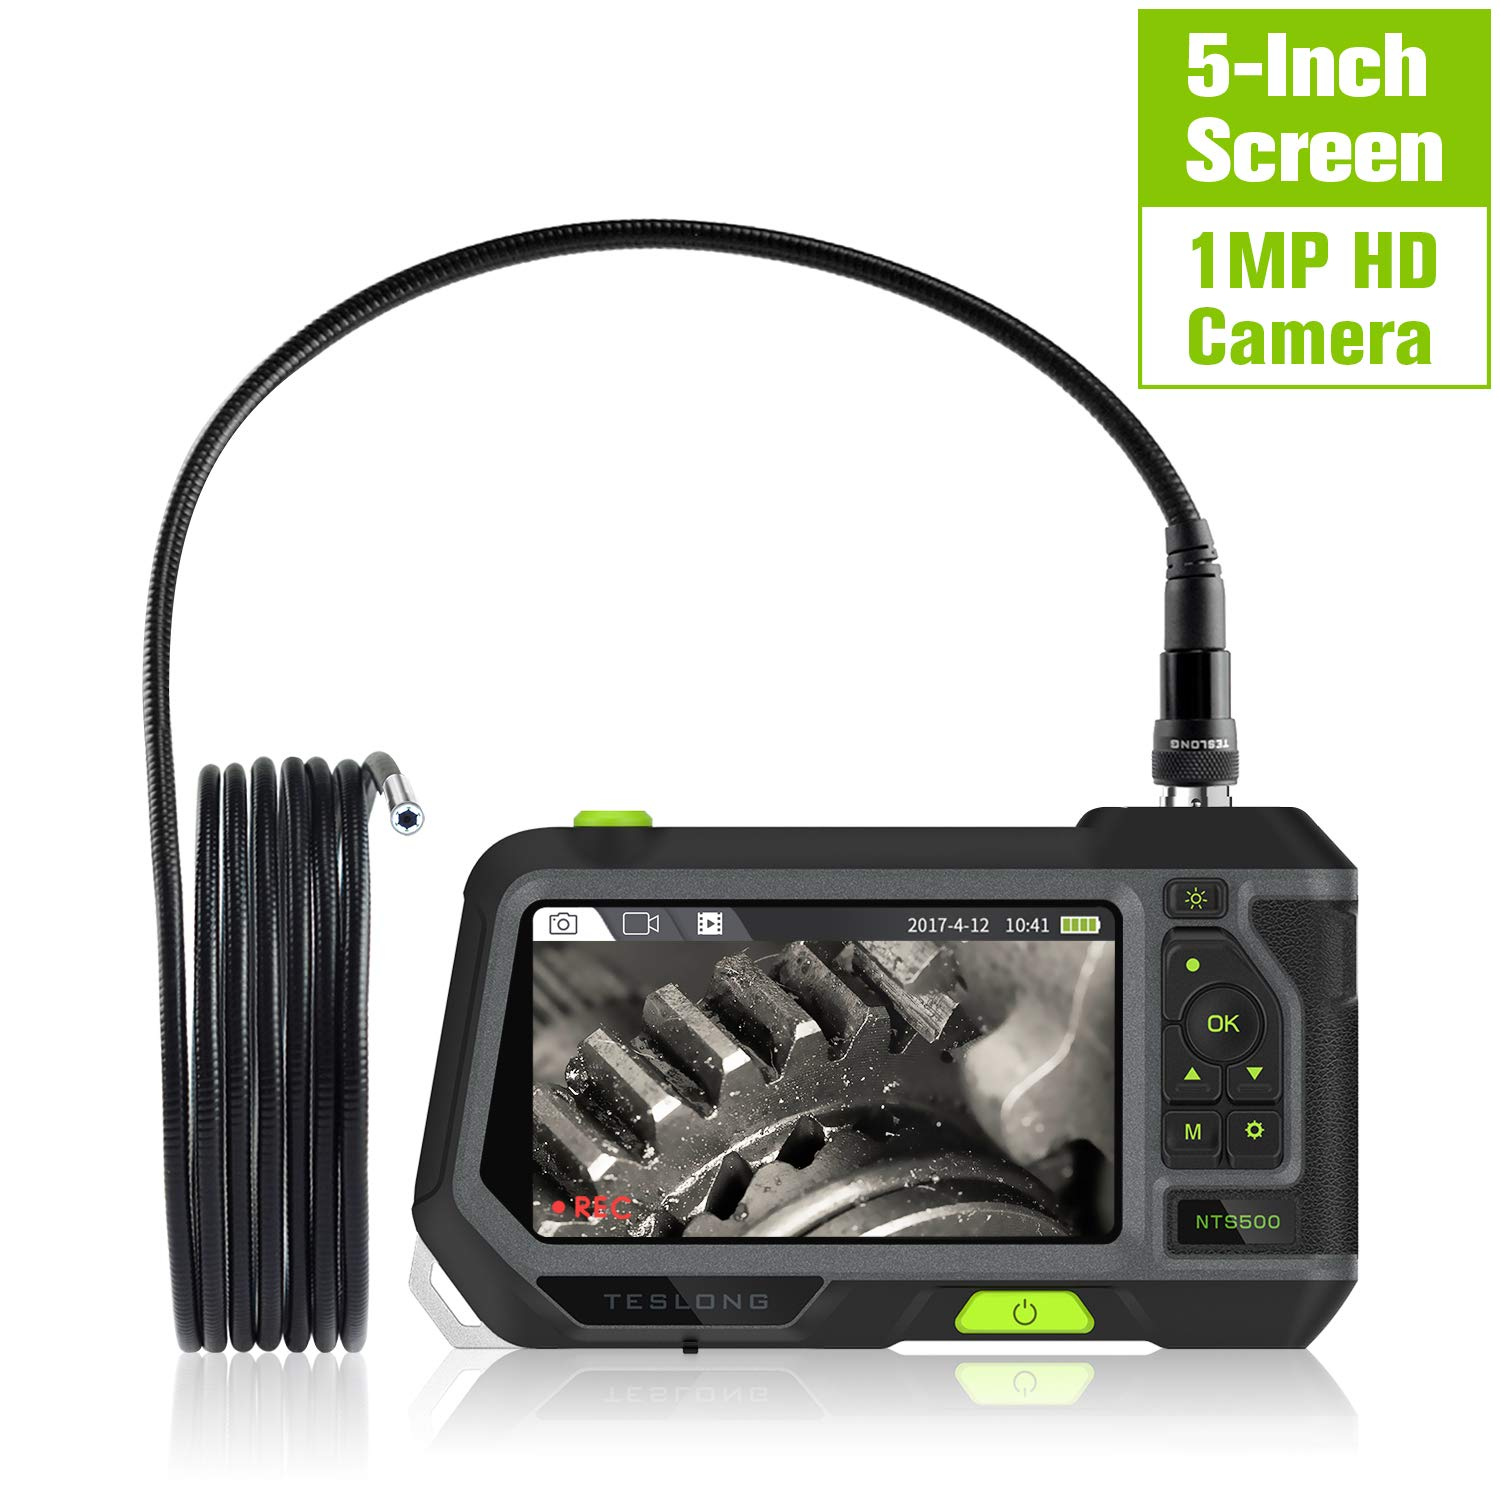 Industrial Endoscope with 5inch Screen, Teslong Ultra Large Monitor Full HD Borescope with 1.0 Megapixels HD Micro Inspection Camera, 9.84ft Waterproof Flexible Gooseneck, 3500mAh Battery and Toolbox